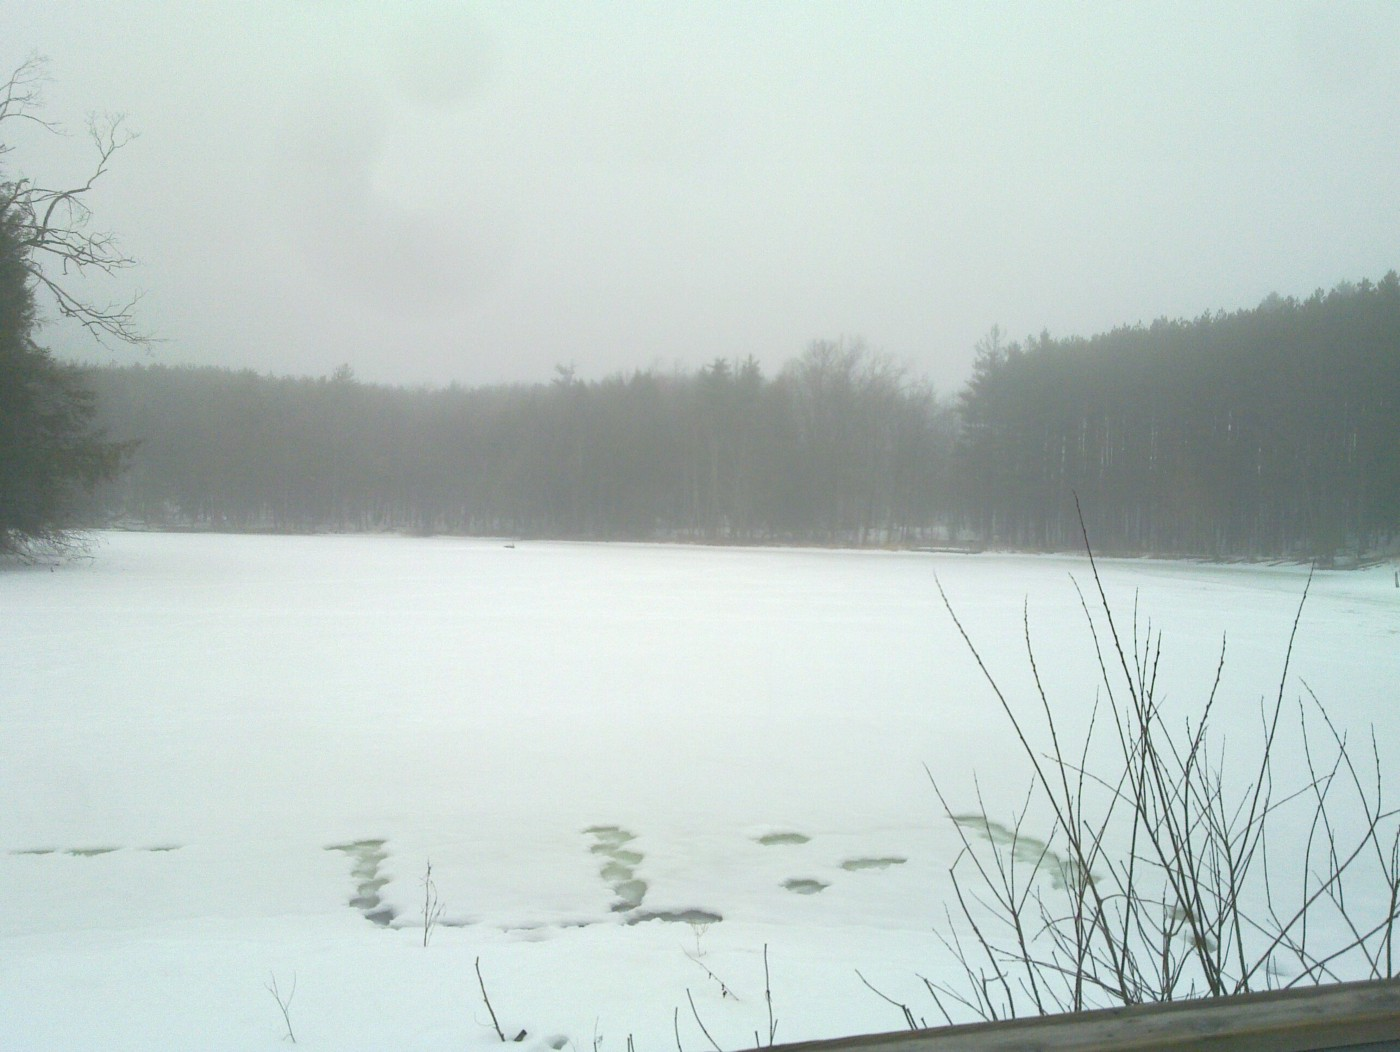 Frozen lake with mist and trees in background.